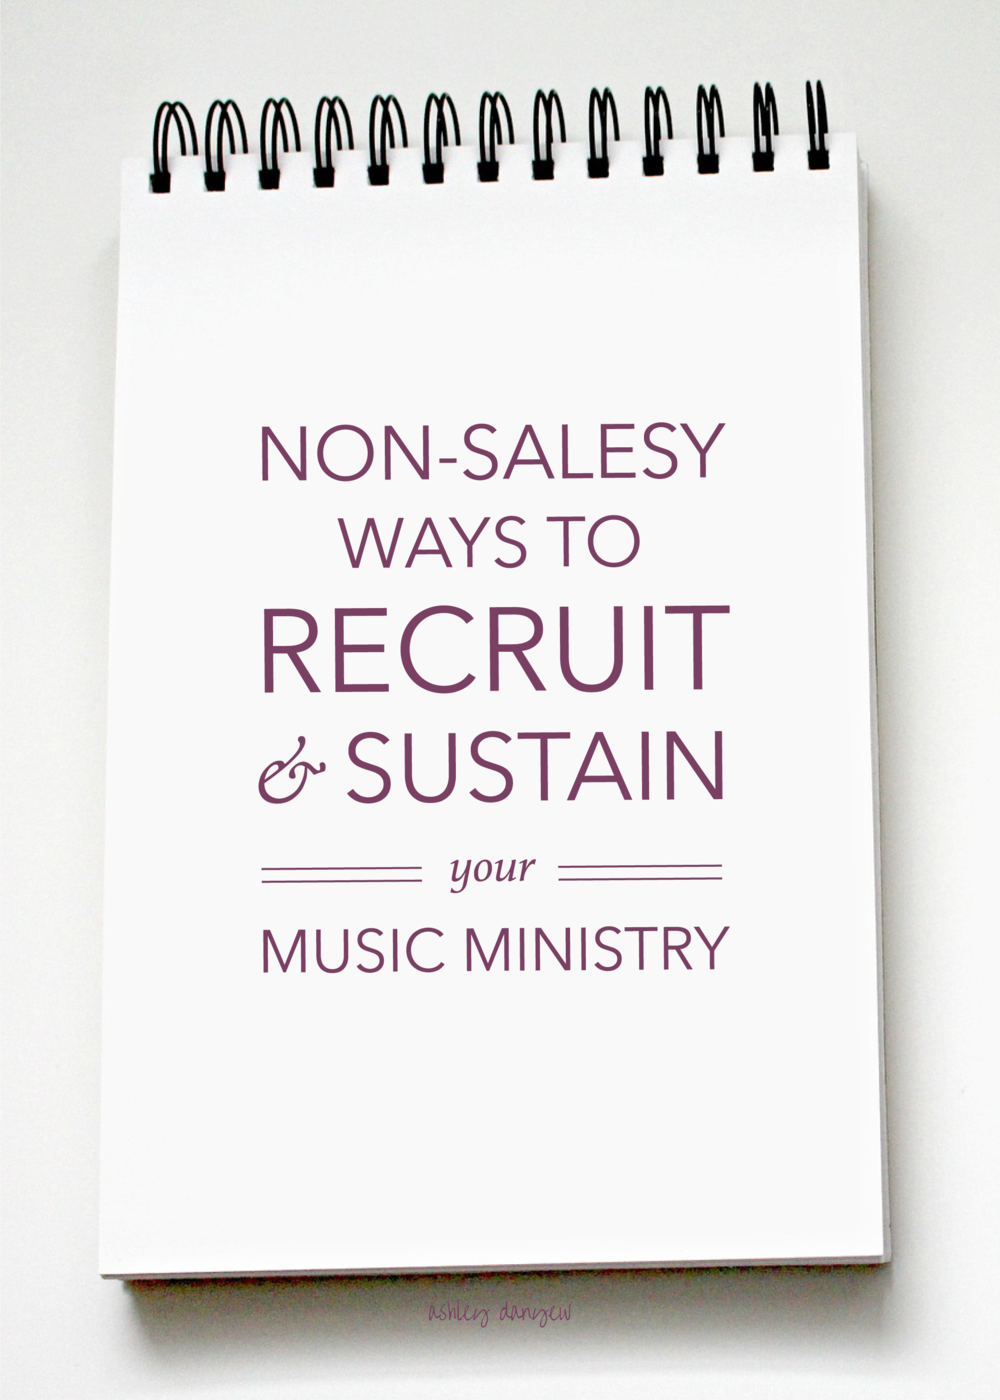 Copy of Non-Salesy Ways to Recruit and Sustain Your Music Ministry